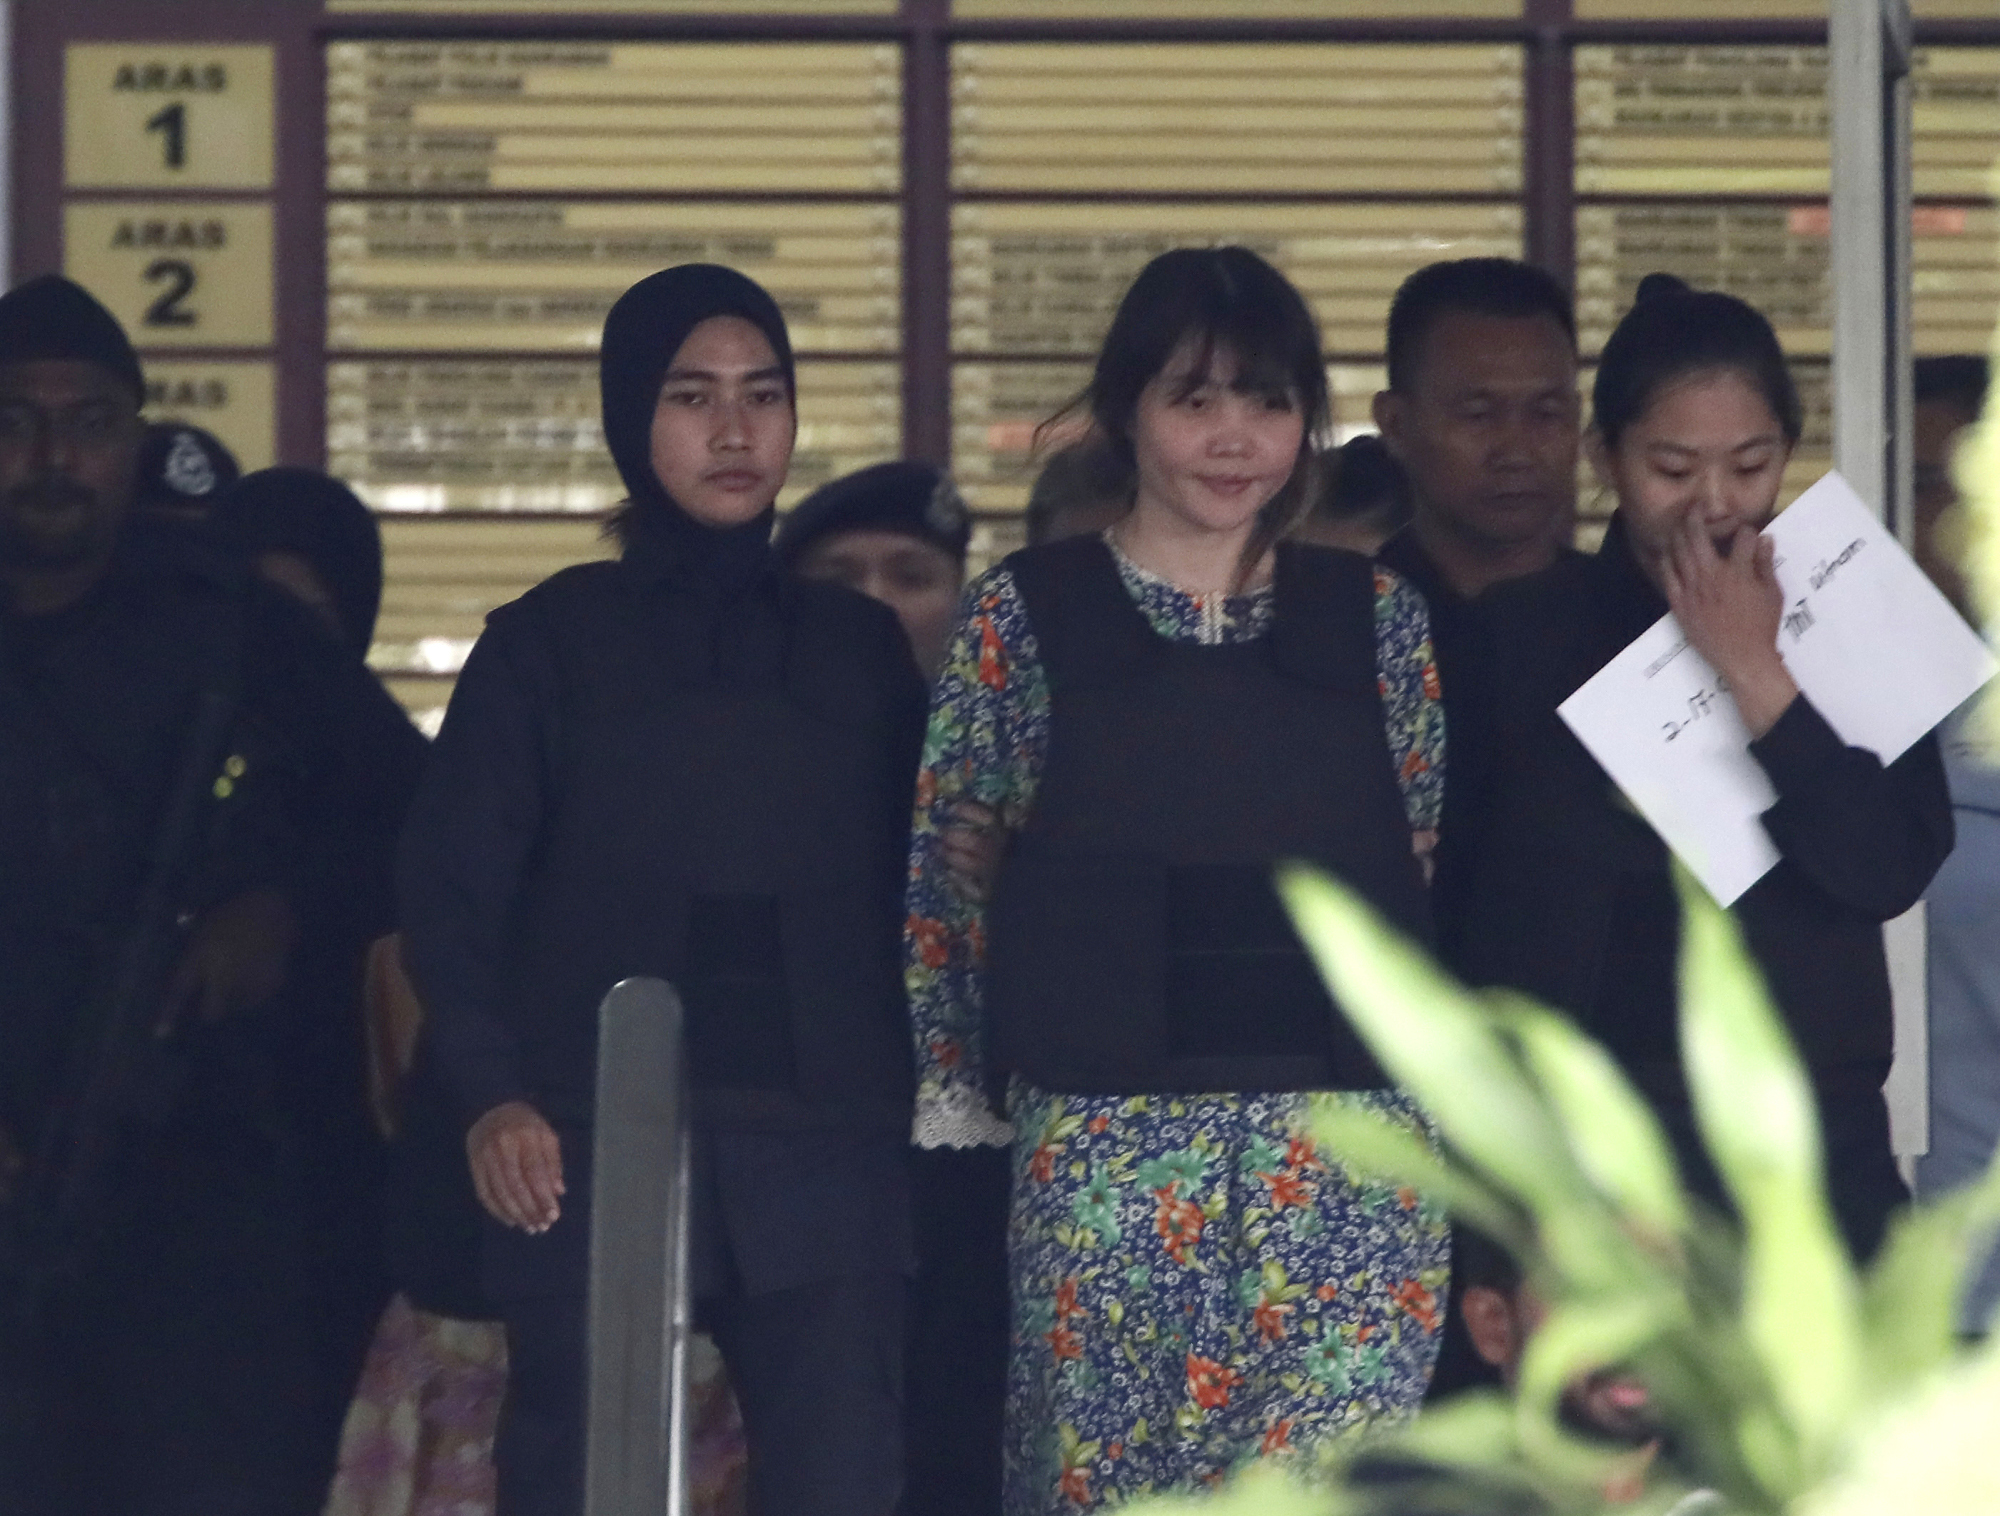 On trial: Vietnamese Doan Thi Huong is escorted by police as she leaves a court hearing in Shah Alam, outside Kuala Lumpur, in October.